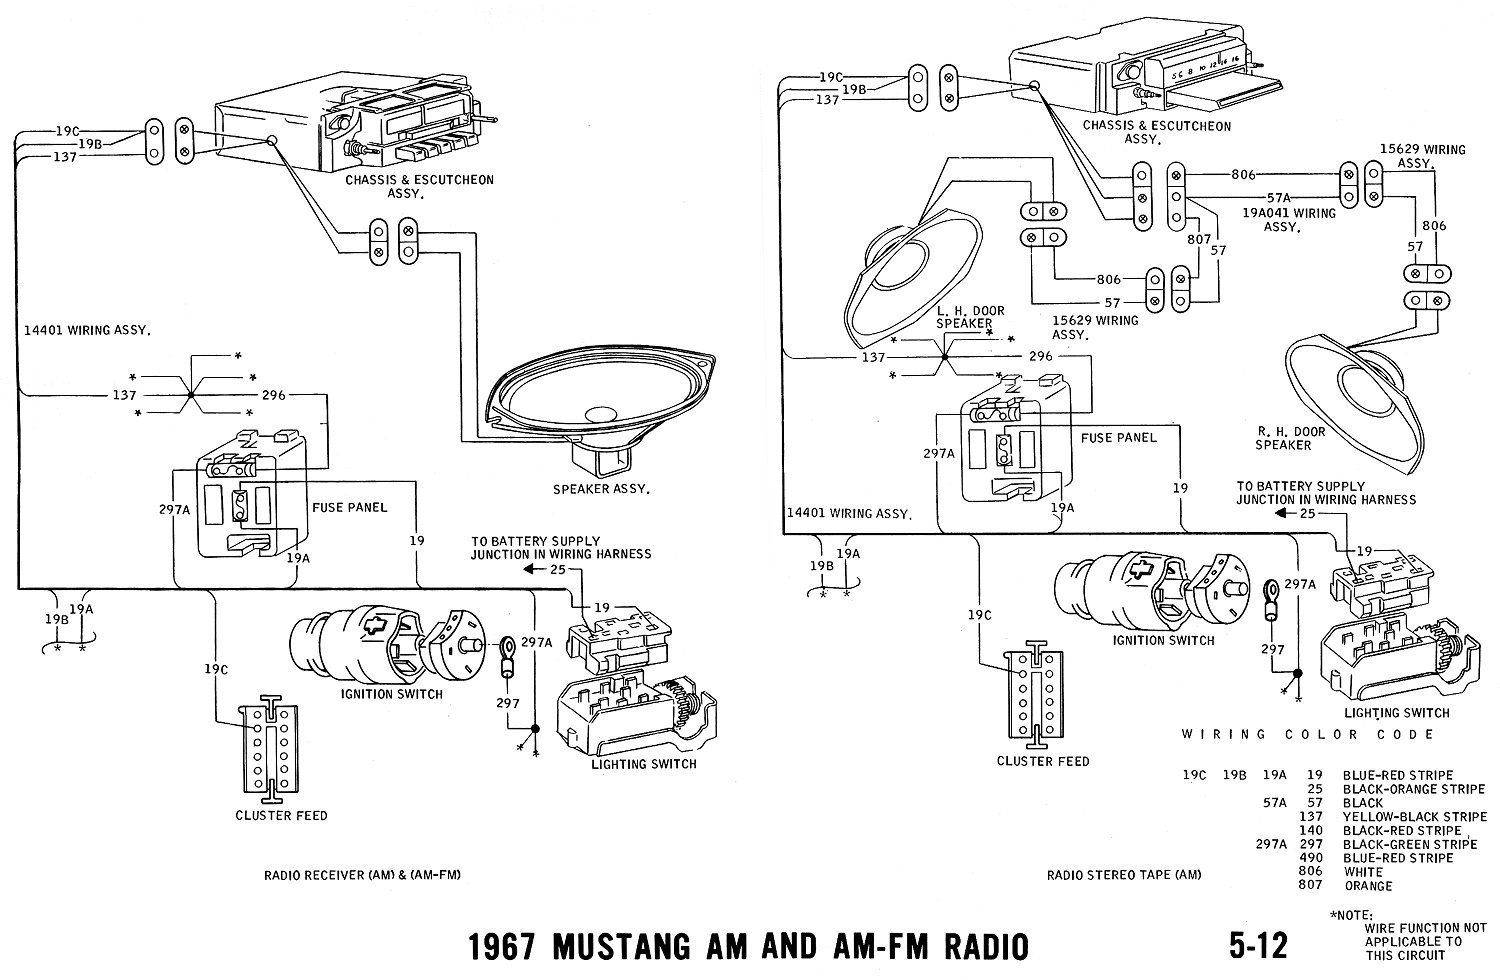 1970 Camaro Radio Wiring Diagram Data Diagrams For Chevy Mustang 72 Color Schematic